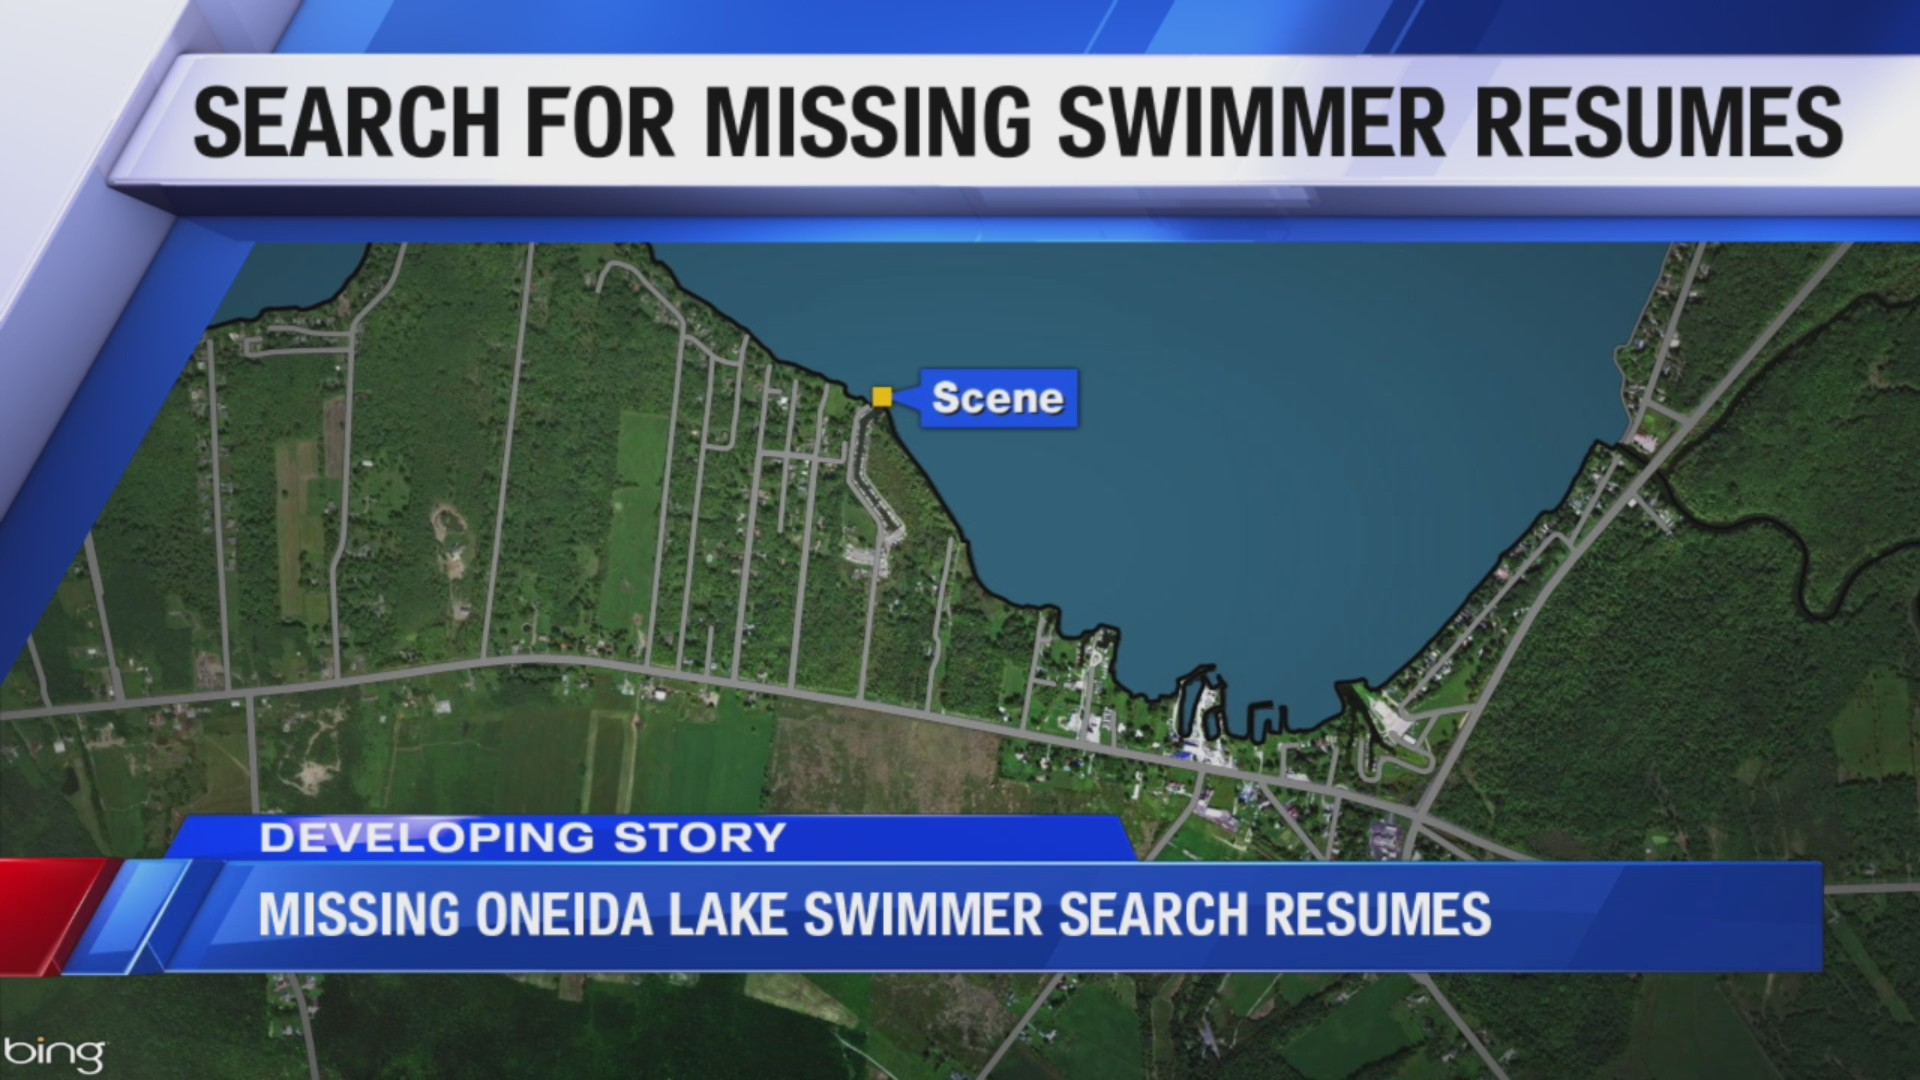 Search continues for missing swimmer on Oneida Lake who went